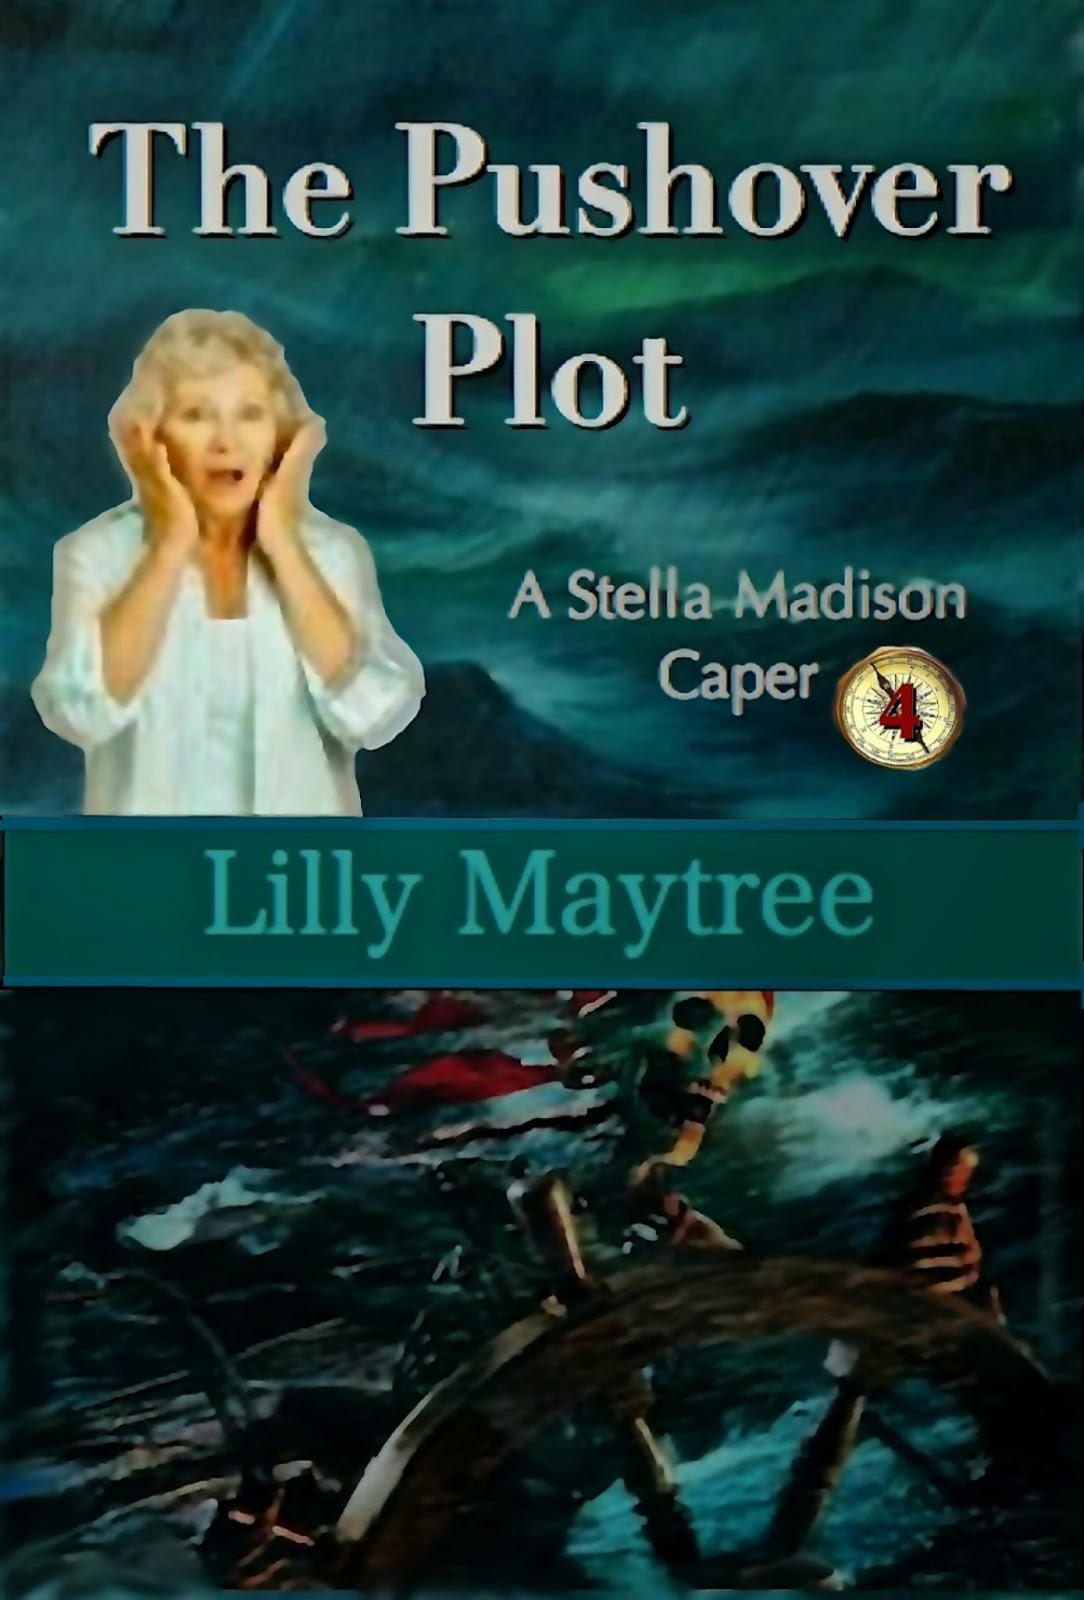 The Pushover Plot by Lilly Maytree